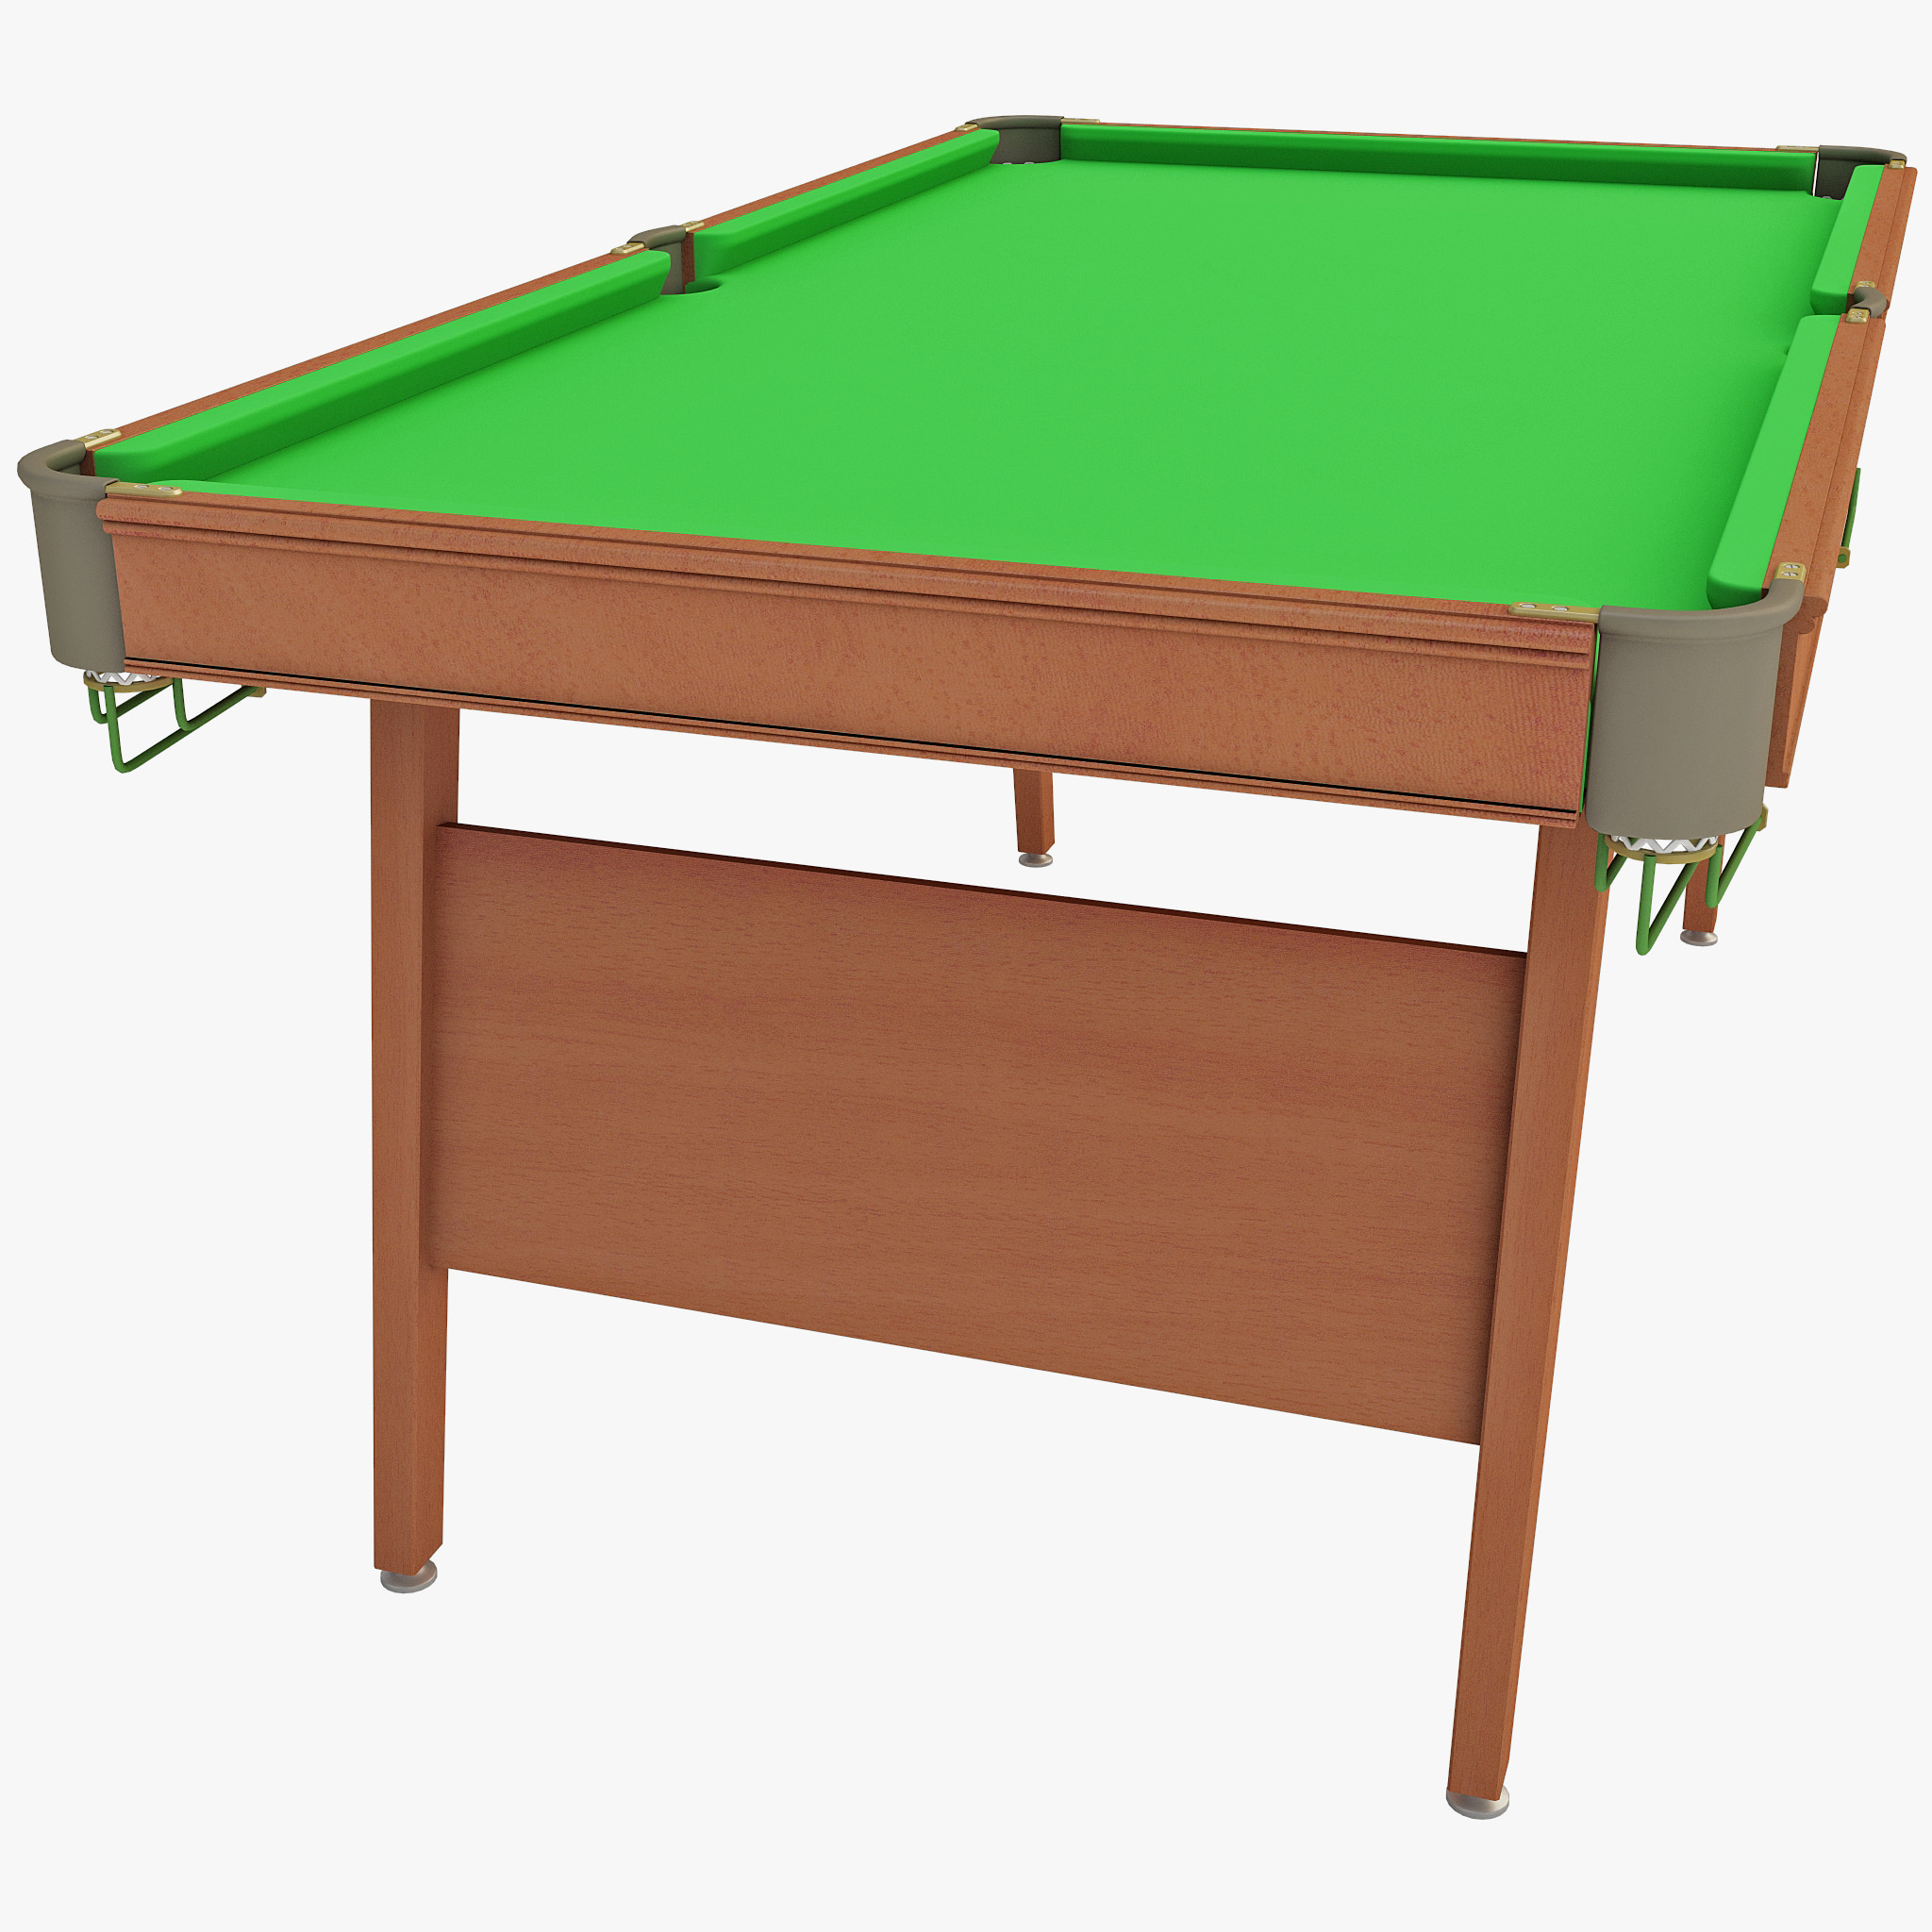 3d snooker table powerglide executive model for 10 snooker table